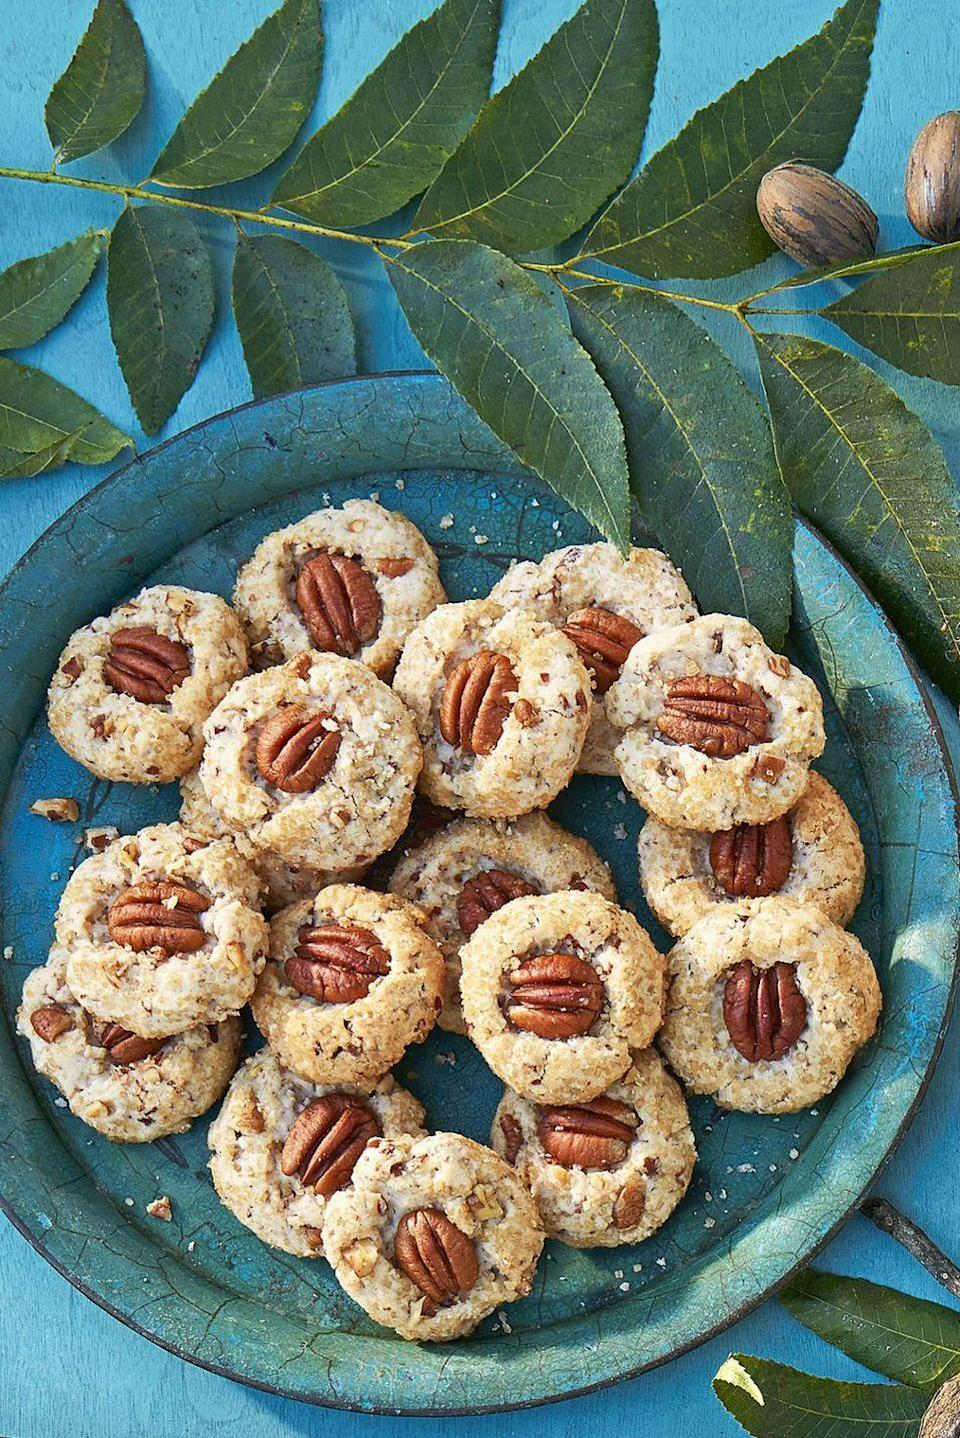 """<p>Add pecans to classic shortbread cookies for a sweet and nutty treat.</p><p><em><a href=""""https://www.countryliving.com/food-drinks/recipes/a45303/pecan-shortbread-cookie-recipe/"""" rel=""""nofollow noopener"""" target=""""_blank"""" data-ylk=""""slk:Get the recipe from Country Living »"""" class=""""link rapid-noclick-resp"""">Get the recipe from Country Living »</a></em></p>"""